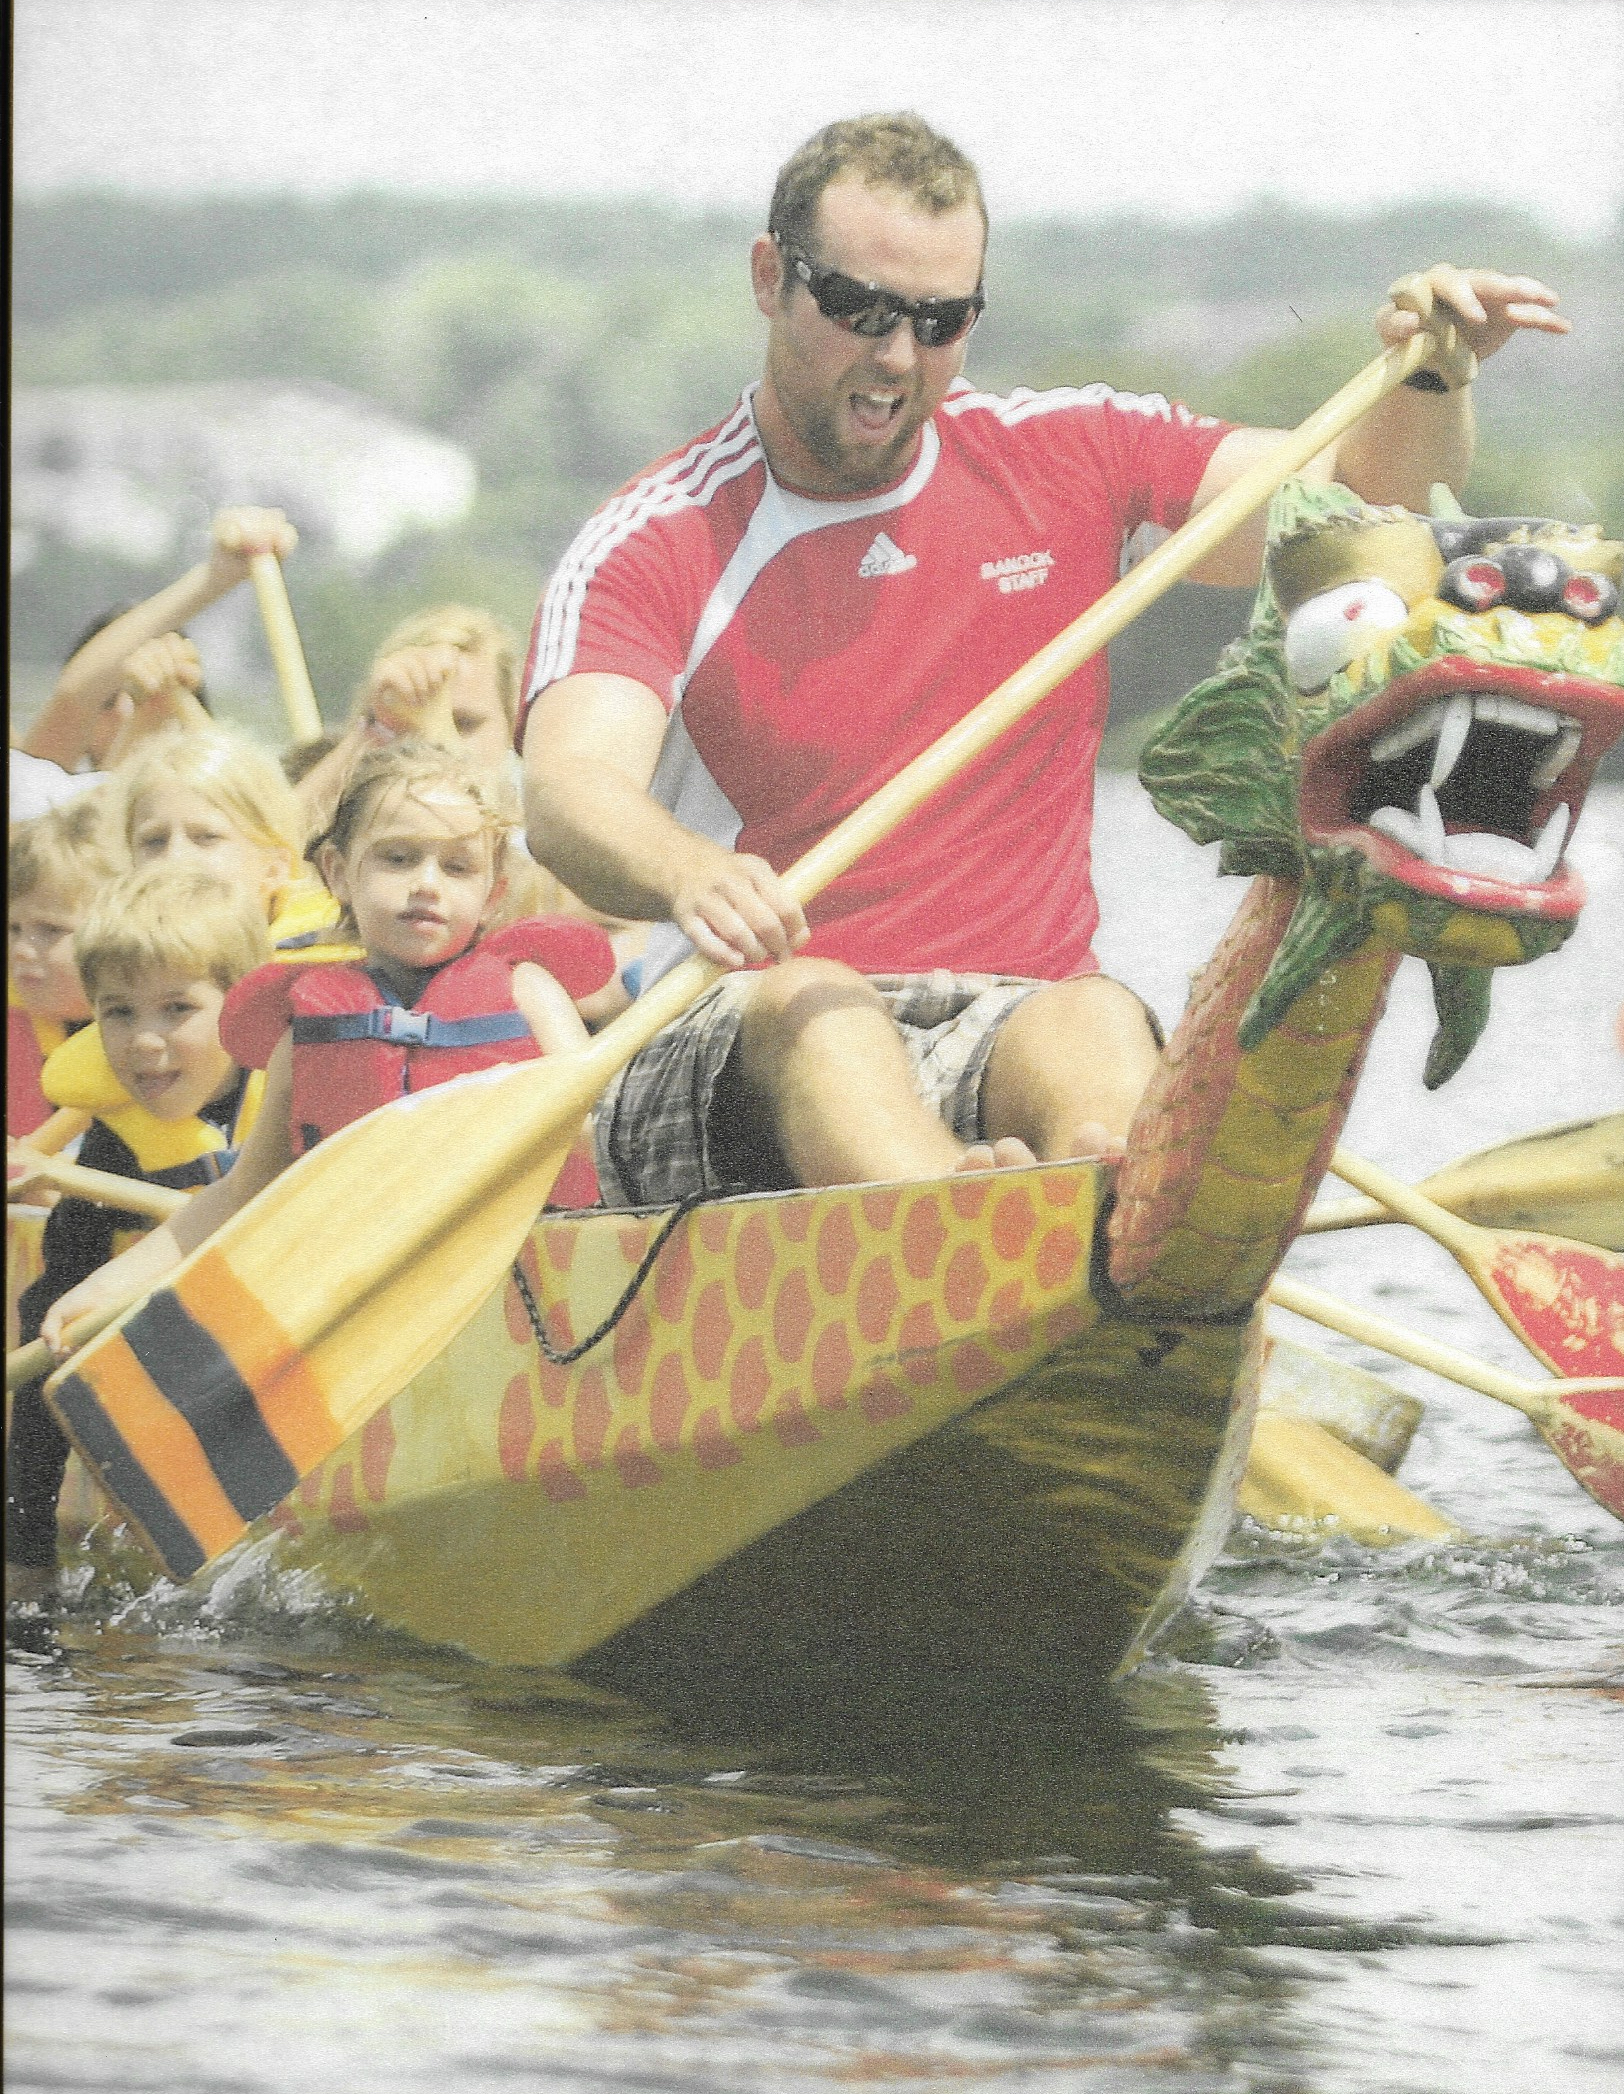 Joe Starr, stroking a dragon boat full of young paddlers.